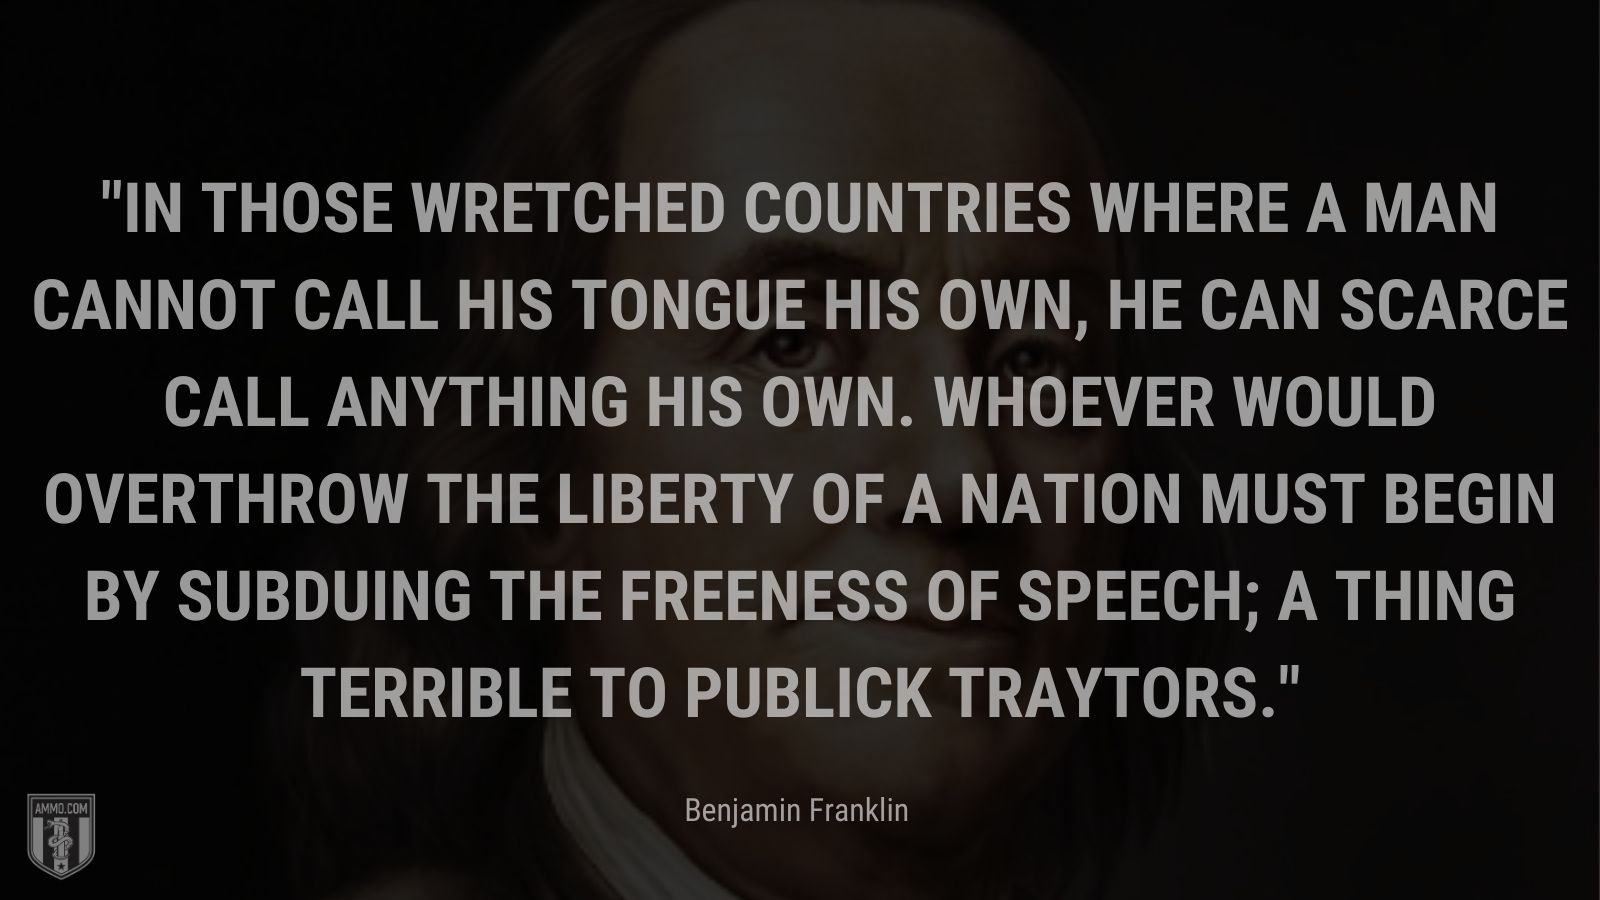 """""""In those wretched countries where a man cannot call his tongue his own, he can scarce call anything his own. Whoever would overthrow the liberty of a nation must begin by subduing the freeness of speech; a thing terrible to publick traytors."""" - Benjamin Franklin"""